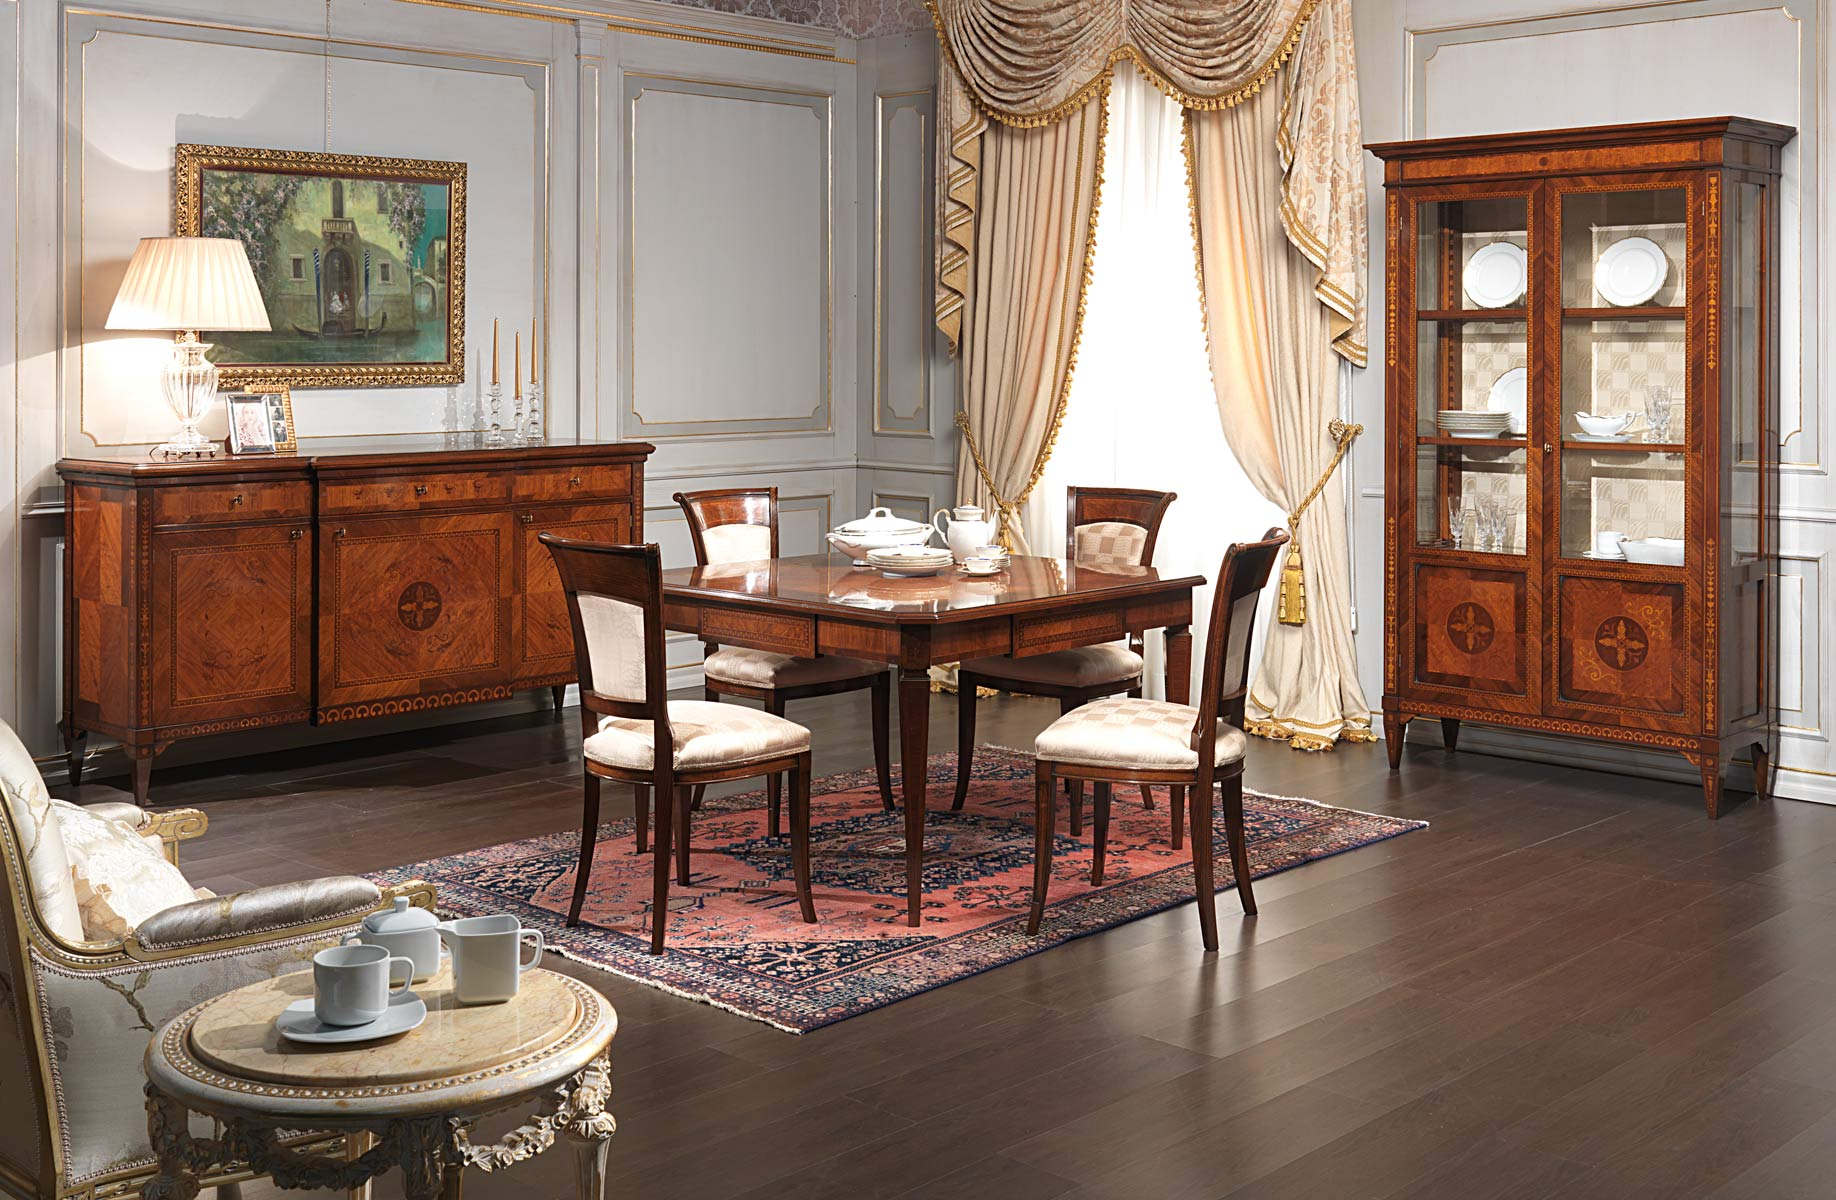 Salle manger maggiolini vimercati classic furniture for Salle a manger english